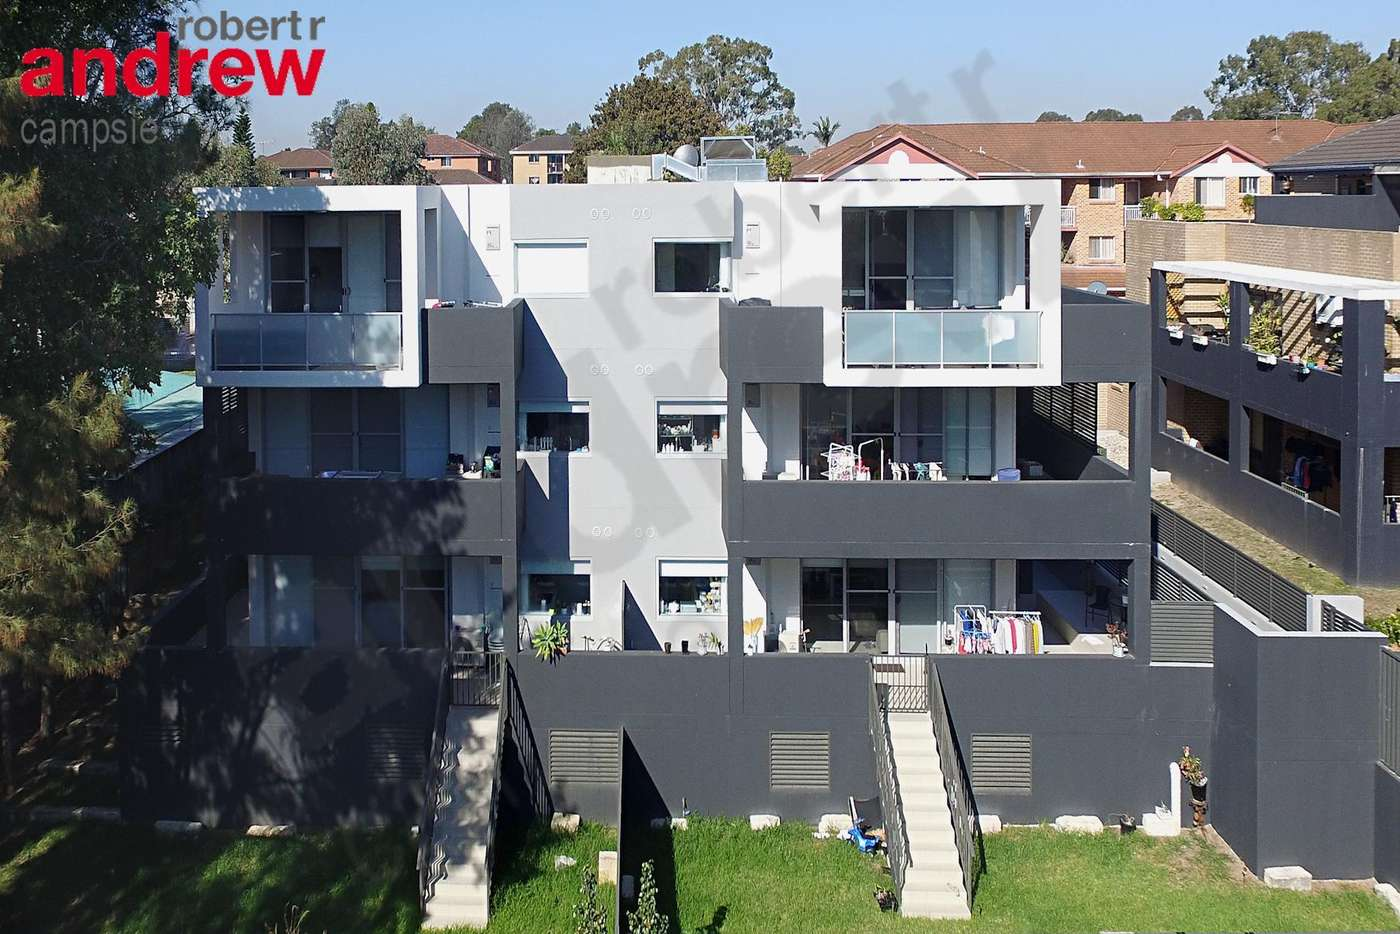 Main view of Homely apartment listing, 7/67C Second Avenue, Campsie NSW 2194